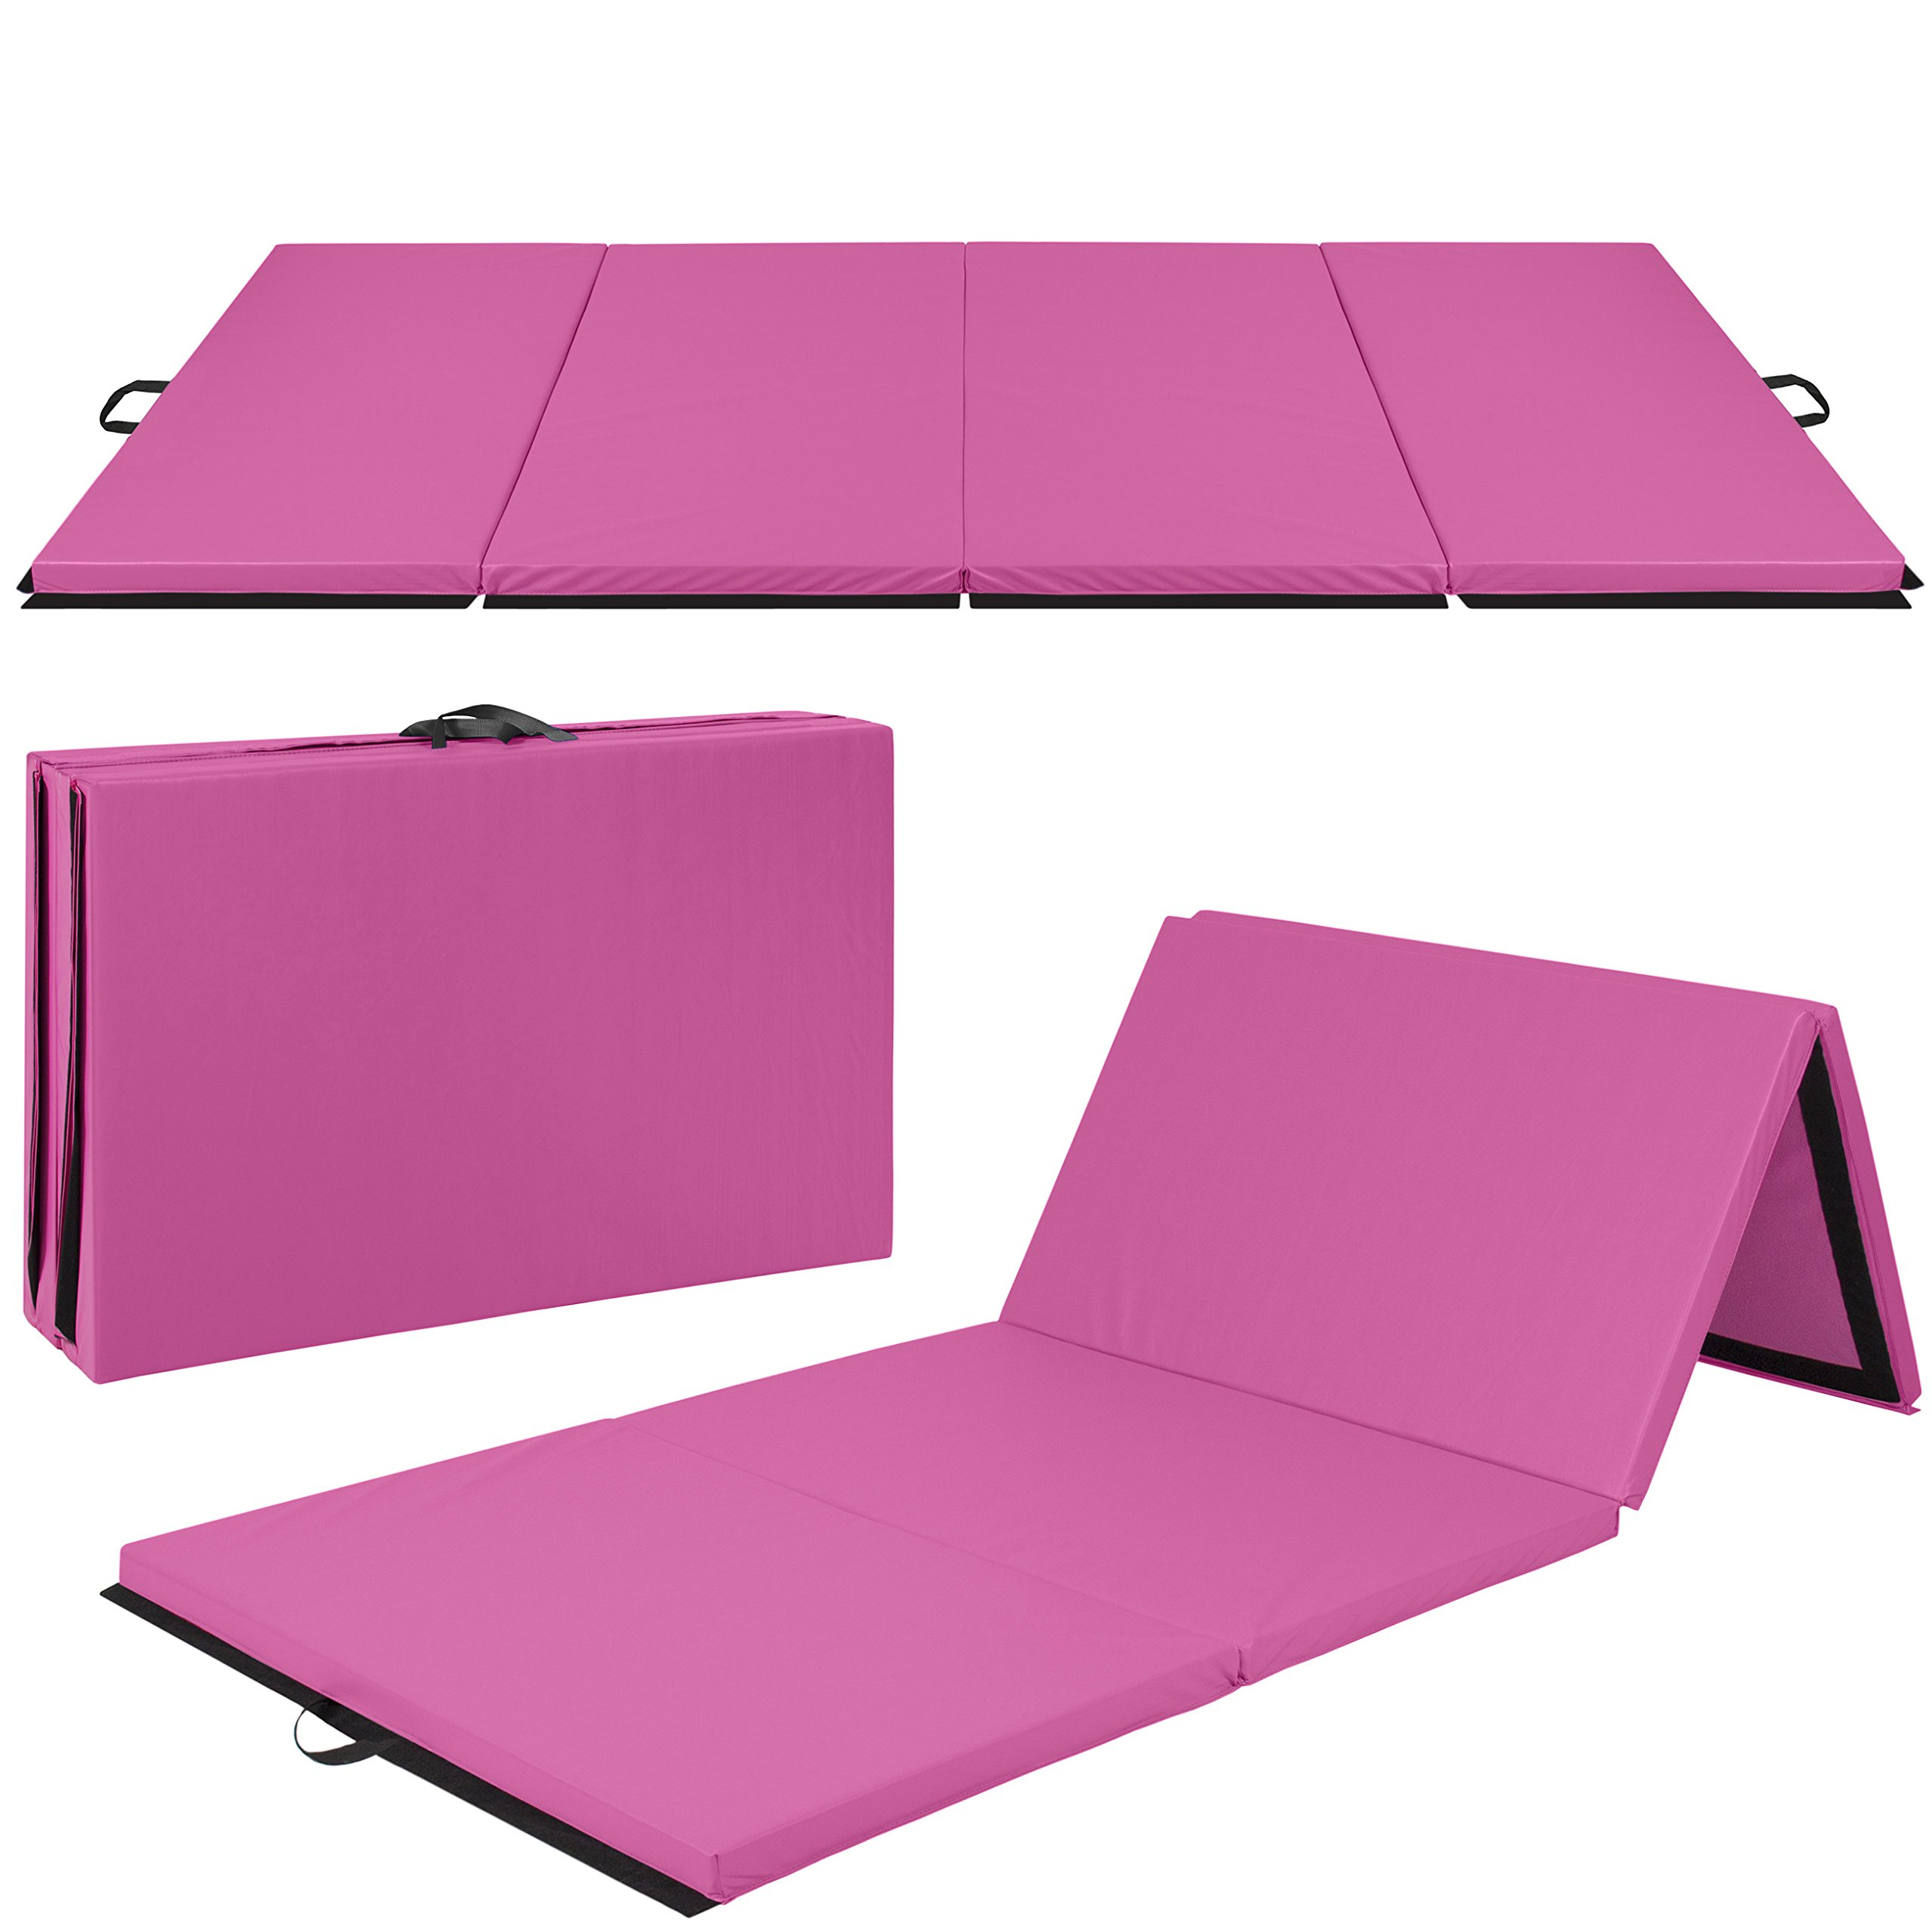 Best Choice Products Folding 10' Exercise Gym Mat for Gymnastics, Aerobics, Yoga, Martial Arts - Pink